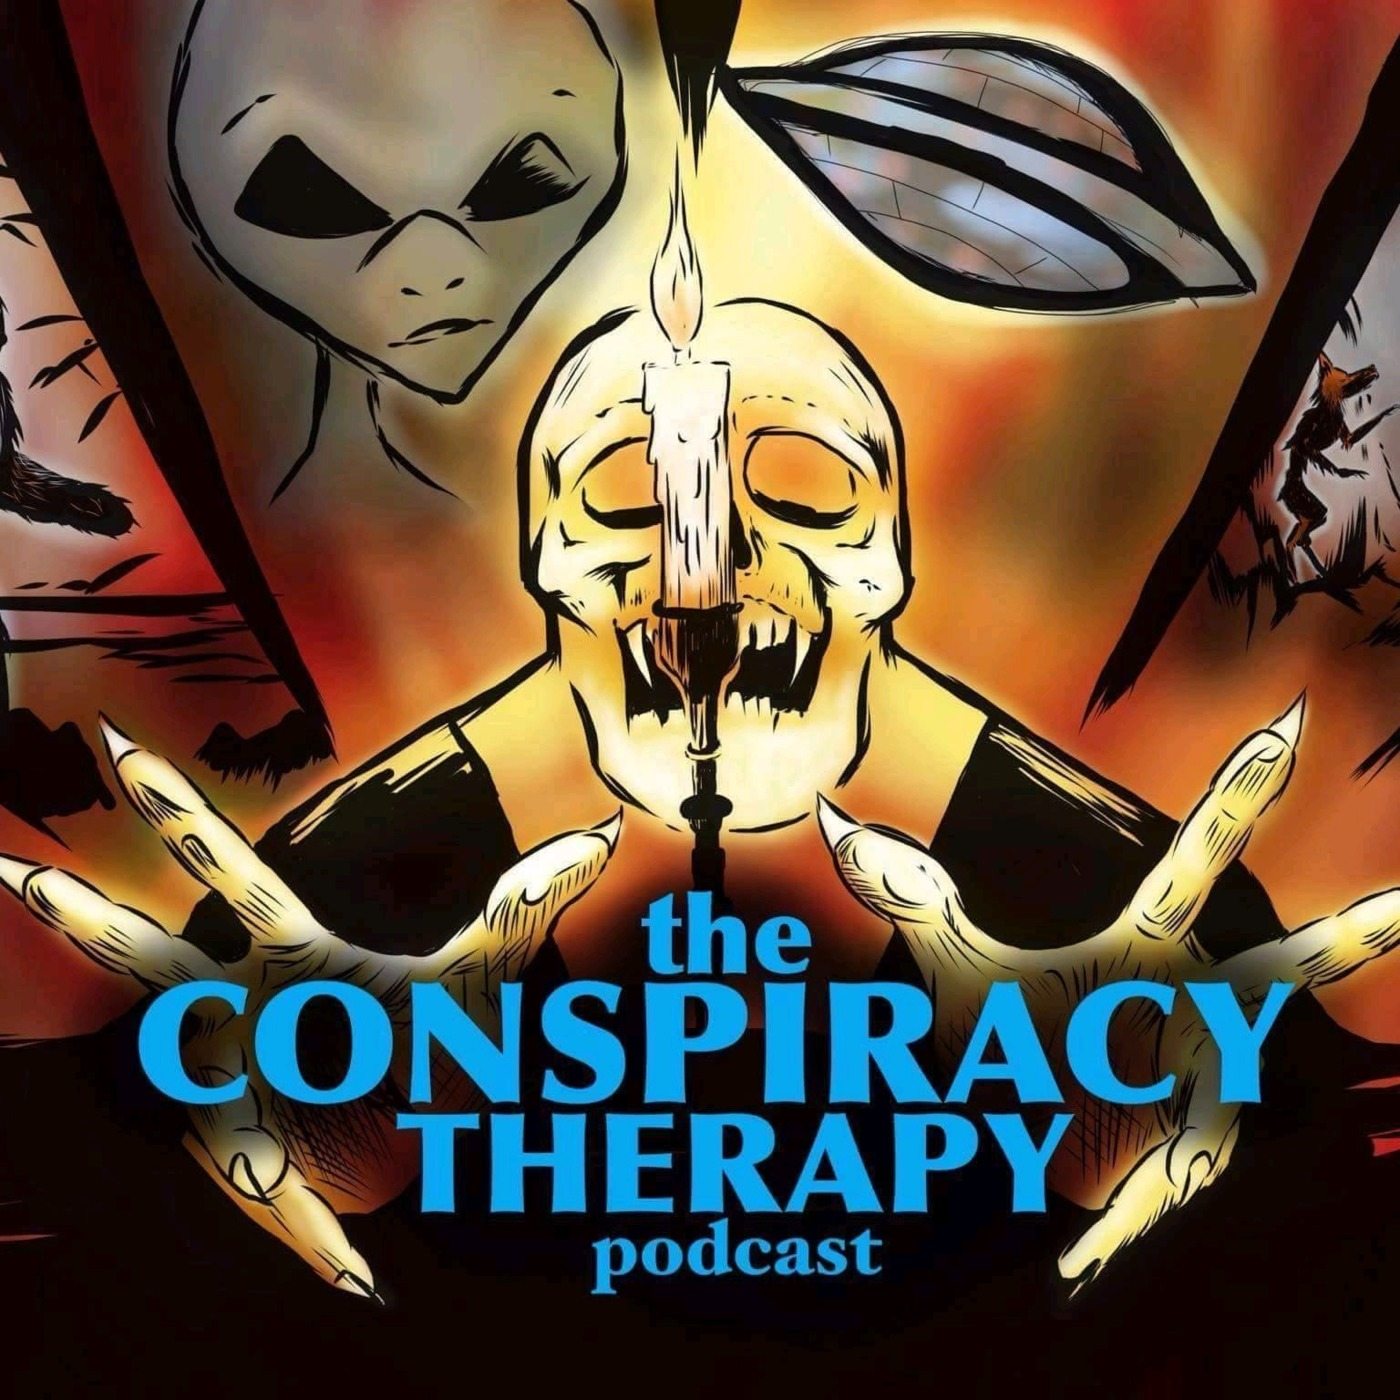 144 - John Wayne Gacy Conspiracy Therapy podcast